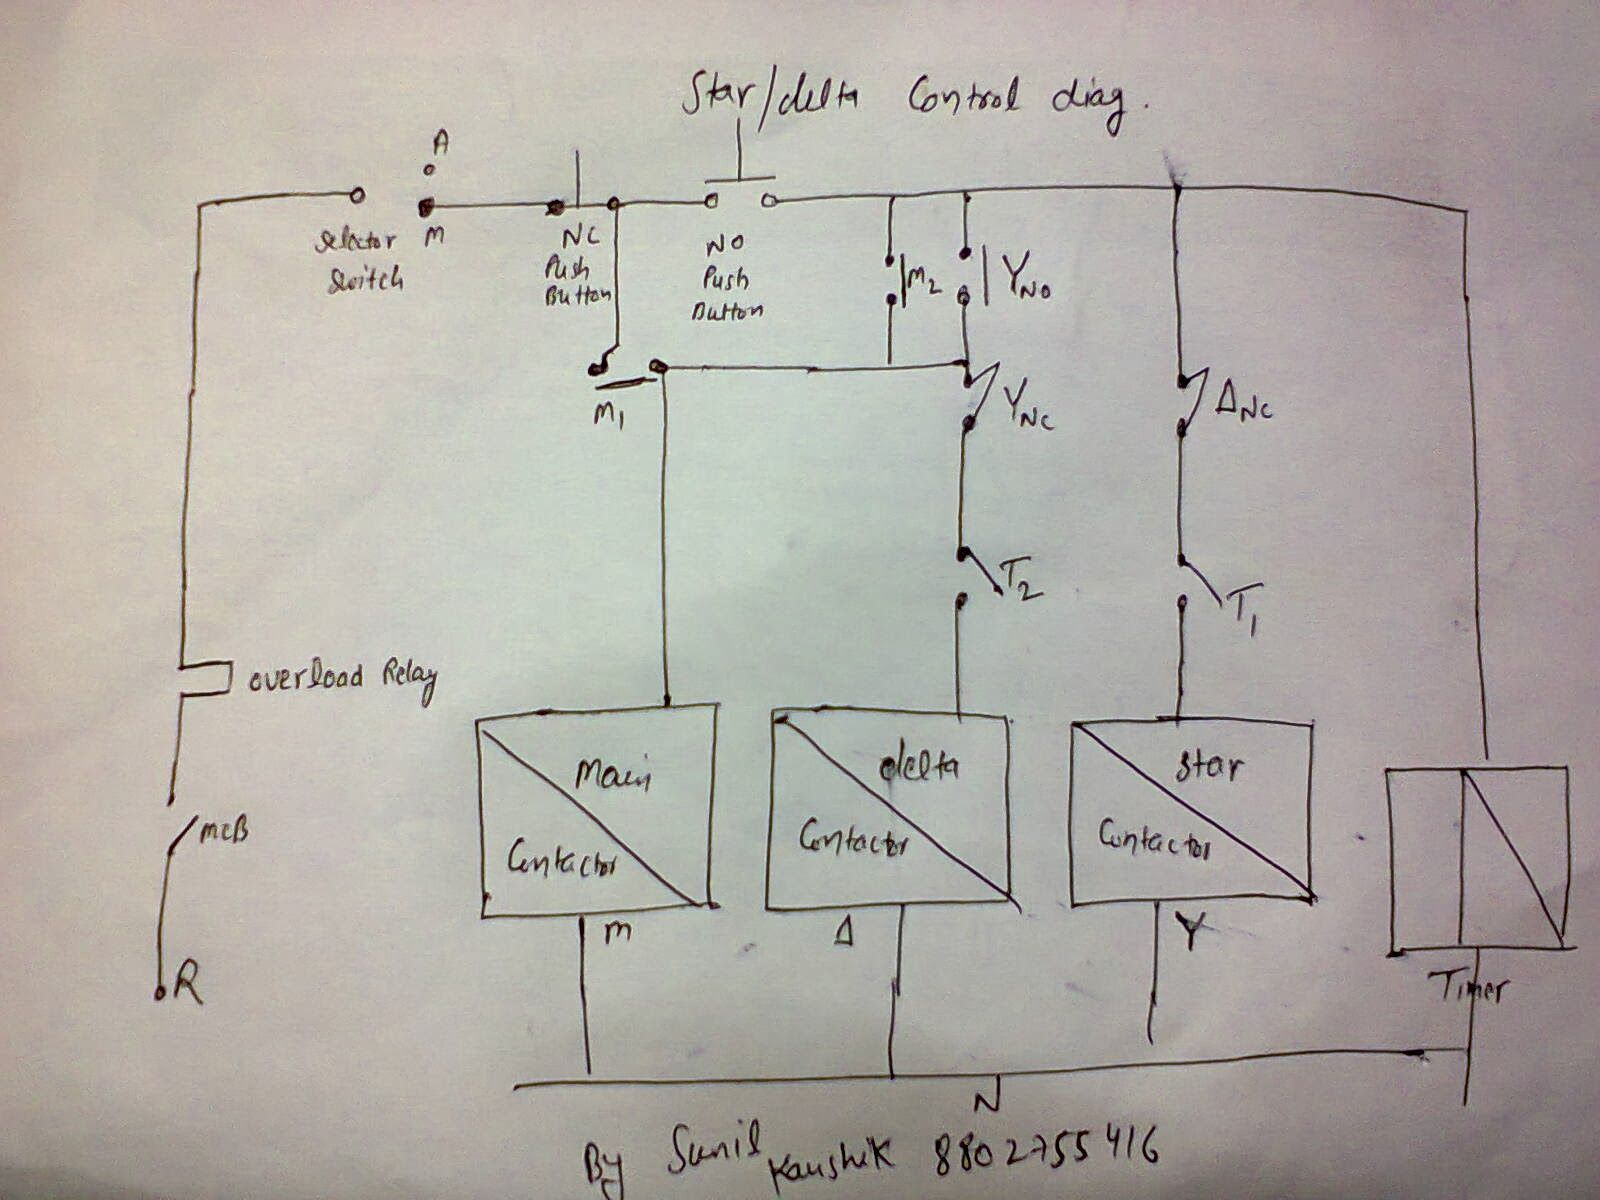 hight resolution of wiring diagram also motor star delta starter diagram on datsun 240z abb wiring diagram wiring diagram